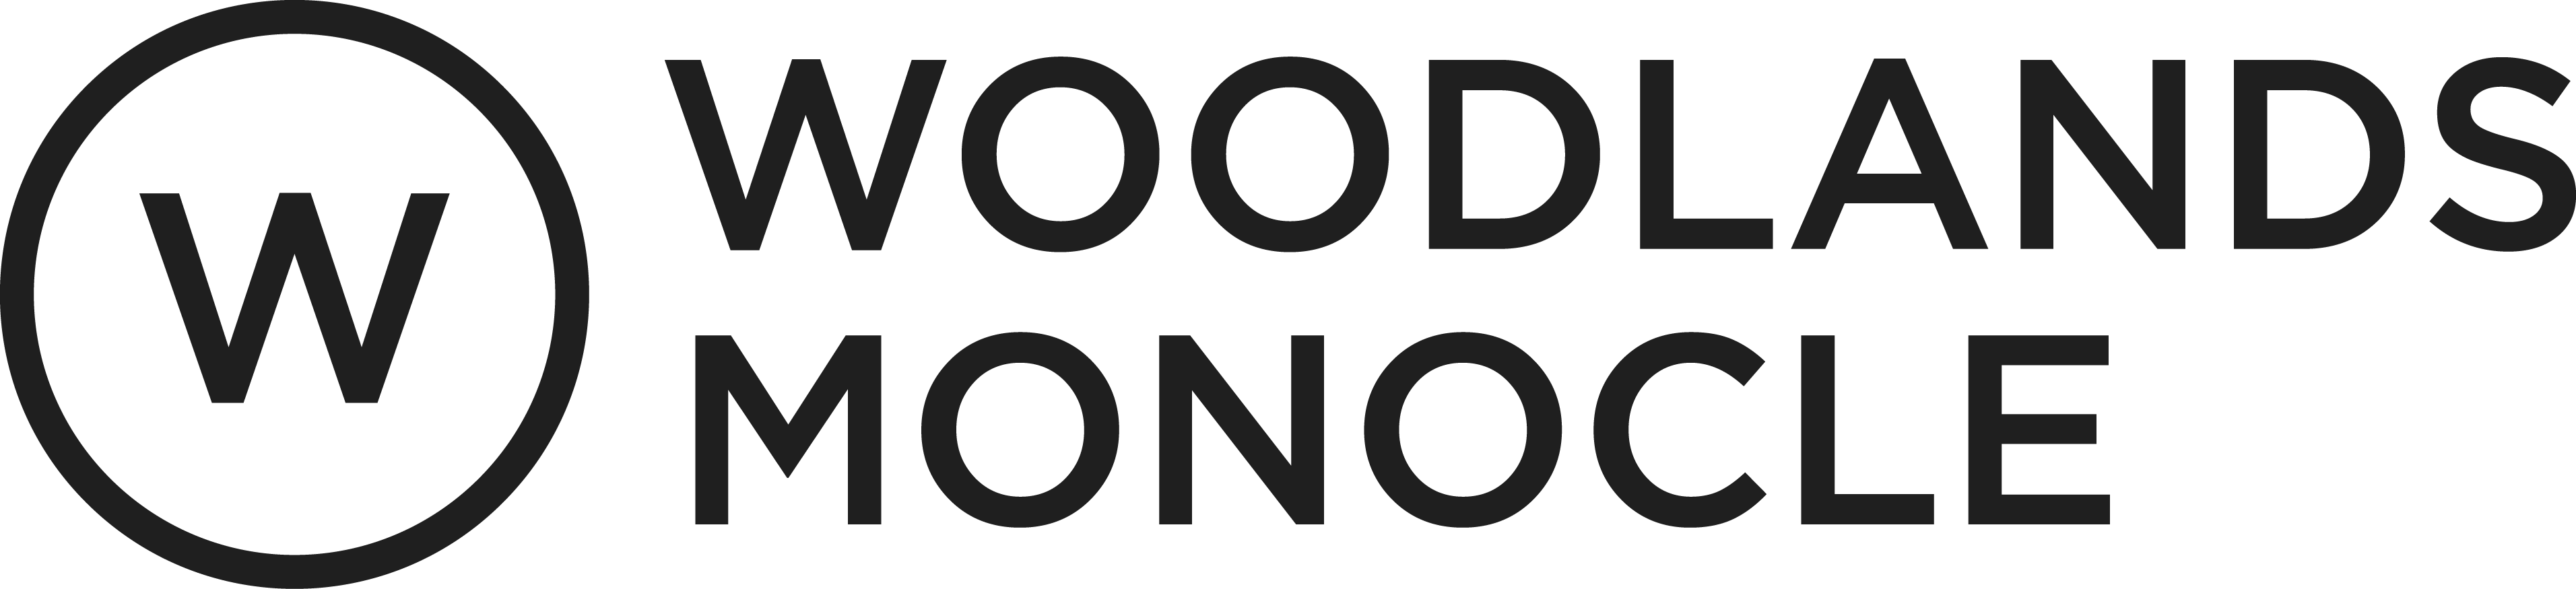 Woodlands_Monocle_Logo